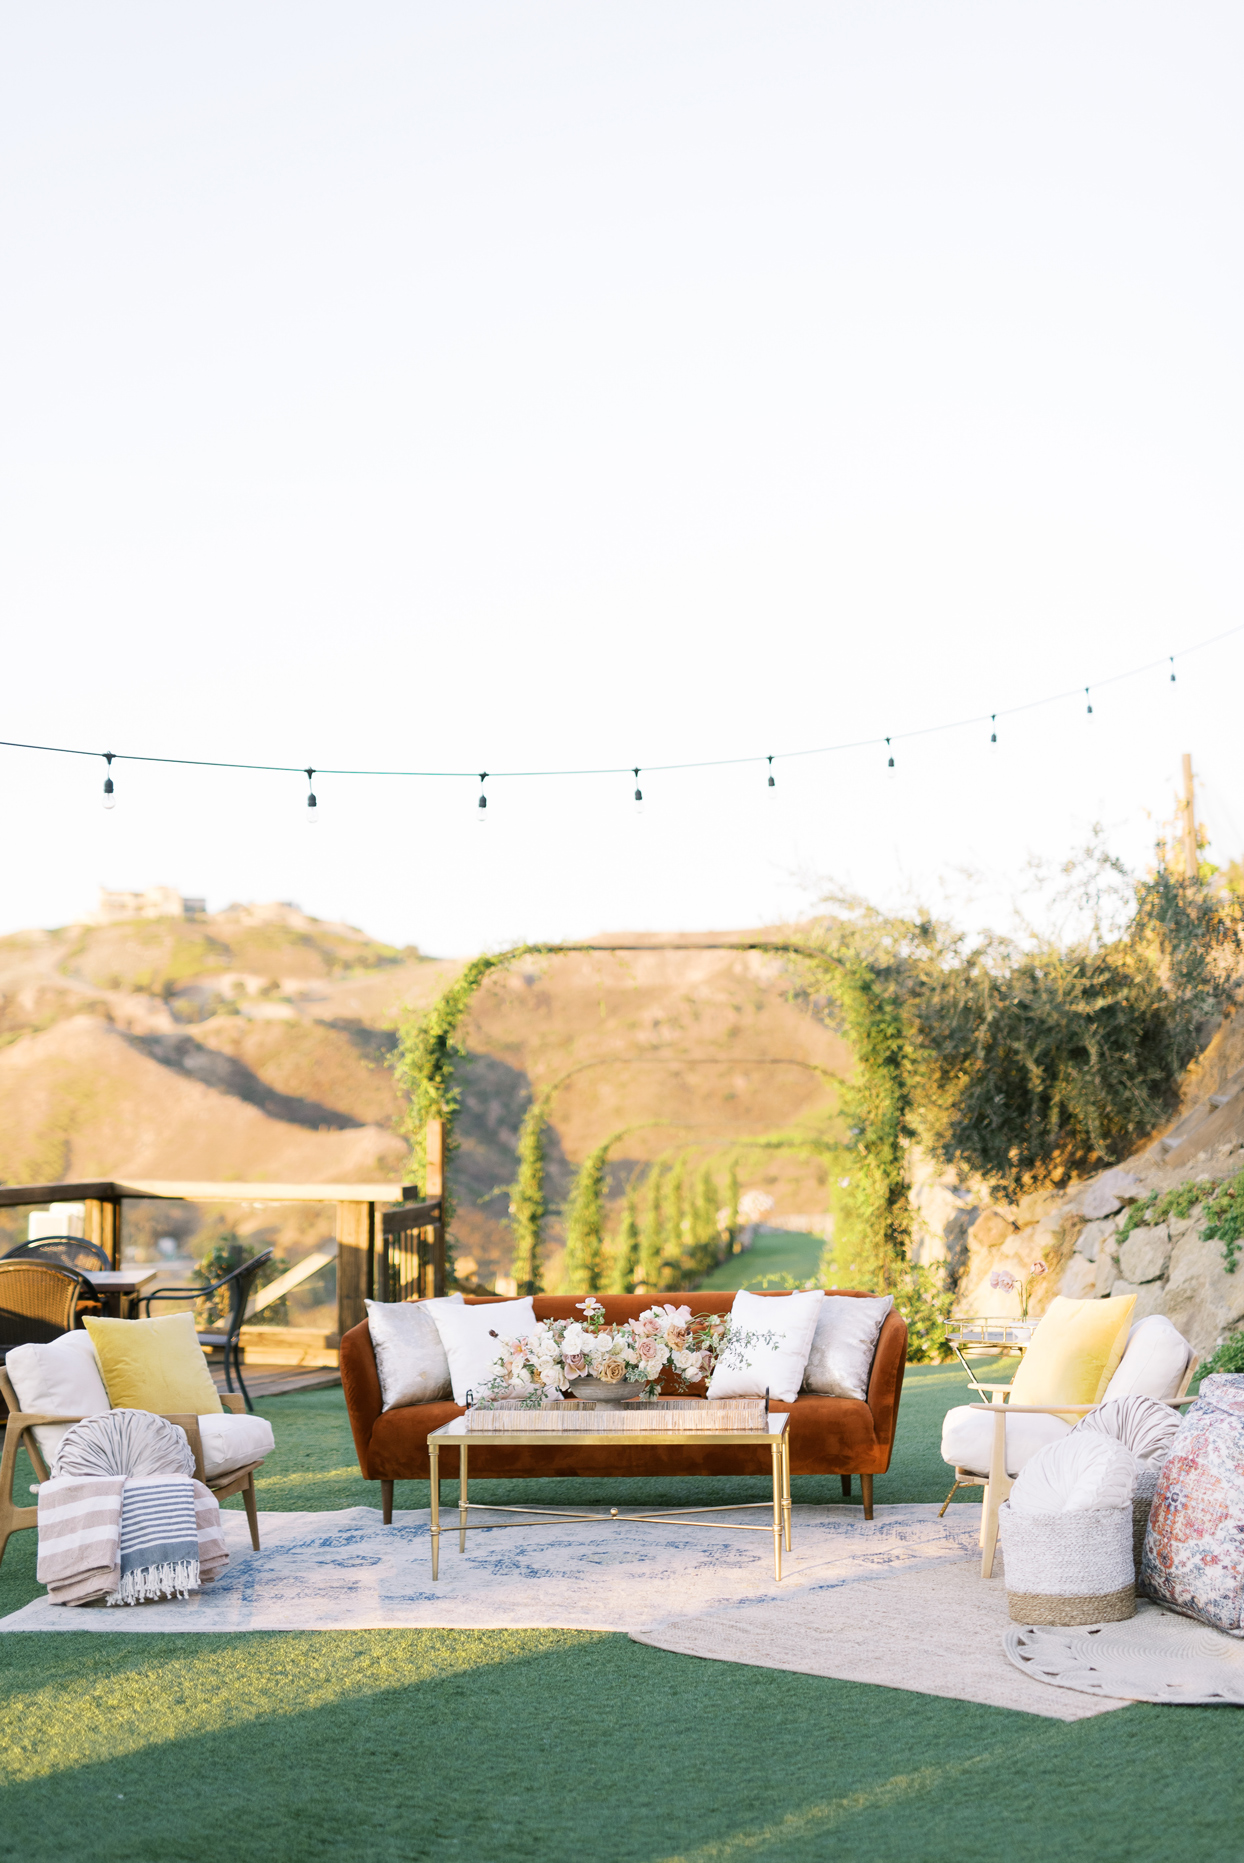 Outdoor wedding lounge for cocktail hour